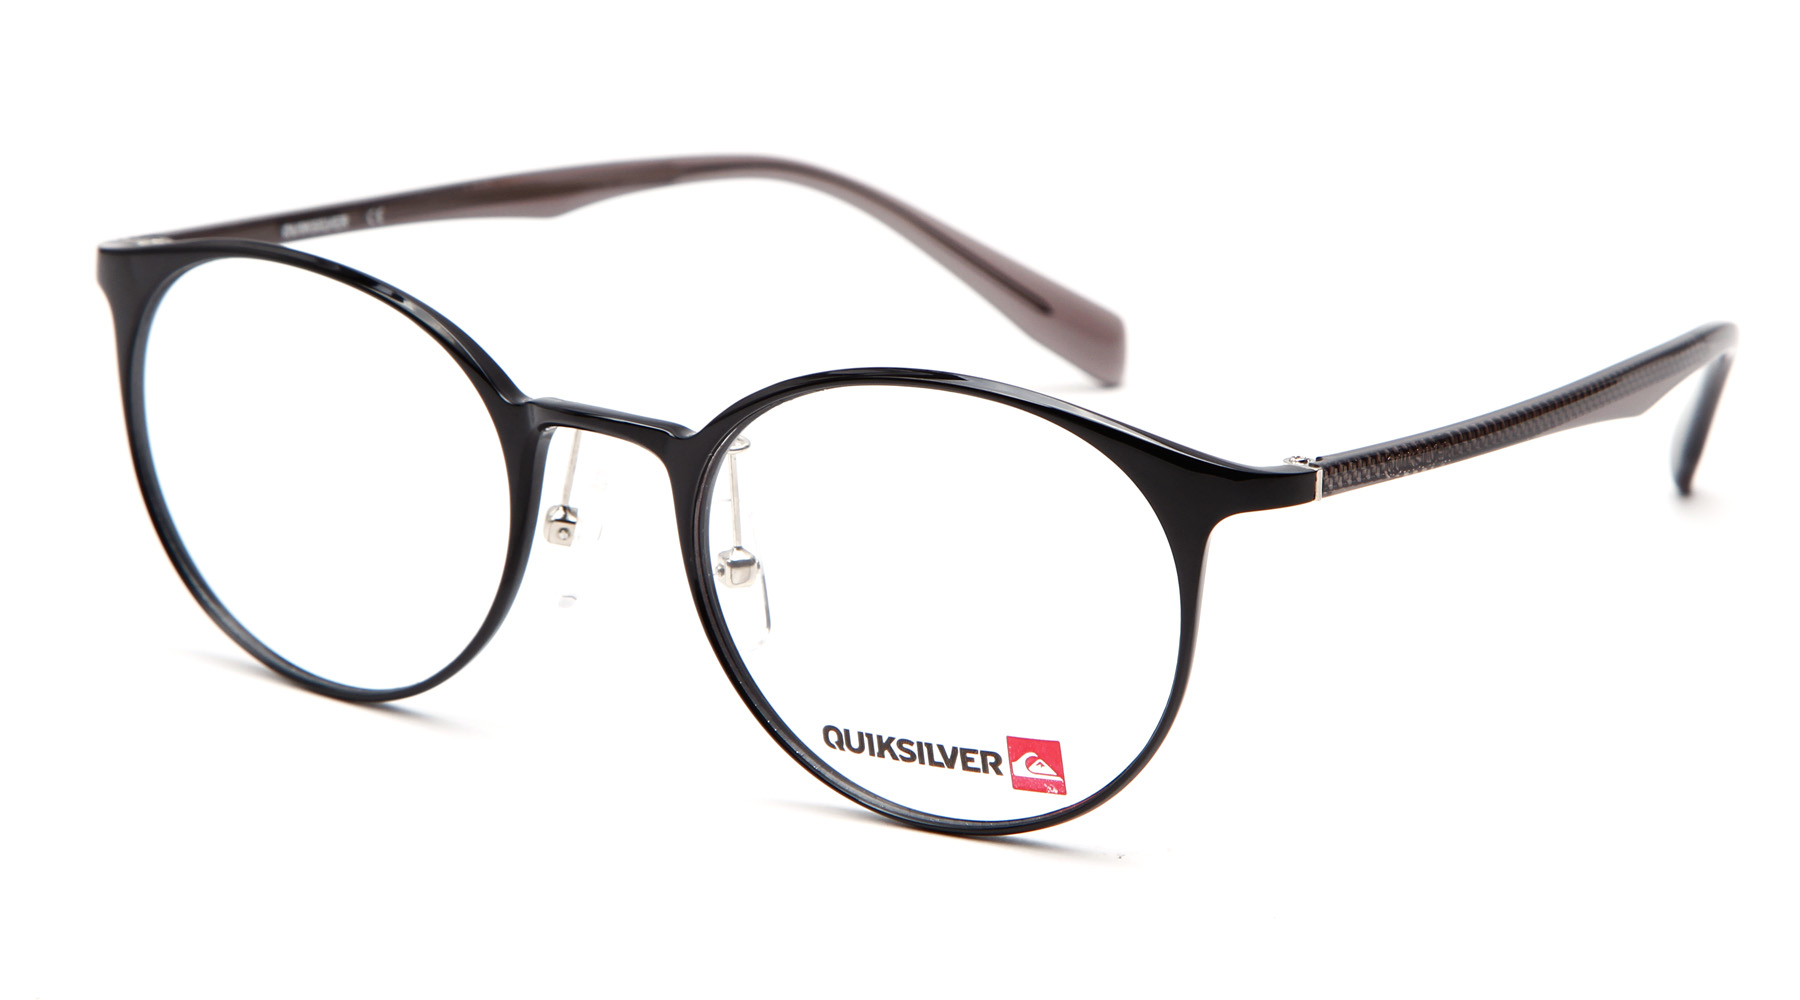 Quiksilver Eyeglass Frames : Quiksilver Mens Glasses QS084 Round Optical Full-Rim Black ...